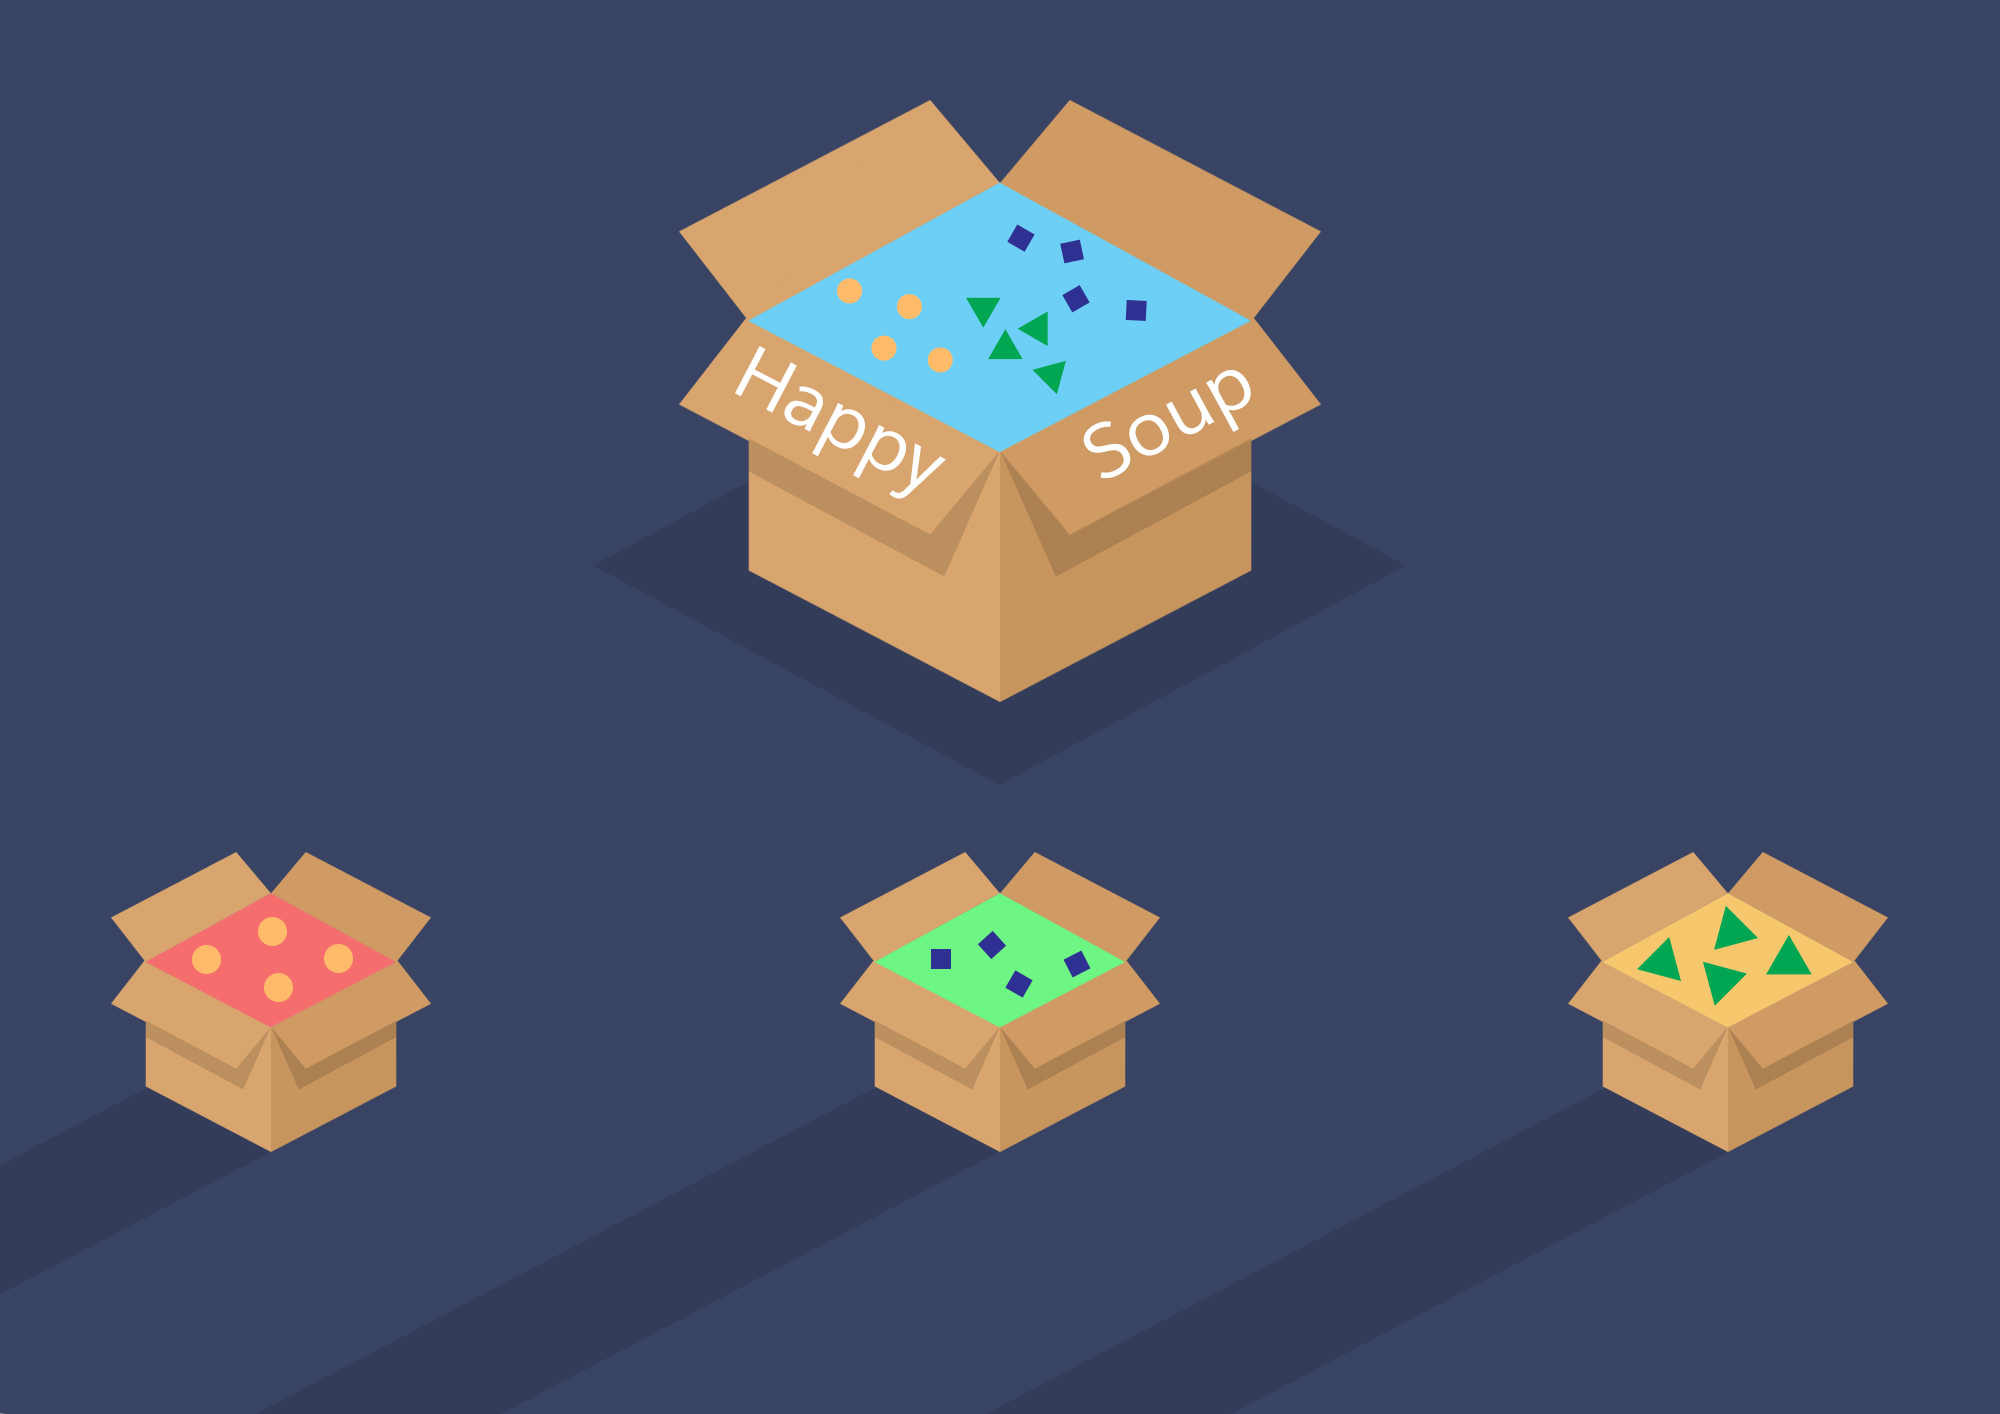 A box is filled with happy soup with different shapes representing different related metadata. Below the happy soup is 3 boxes, each with a specific shape, which is how you'll organize your metadata into packages.